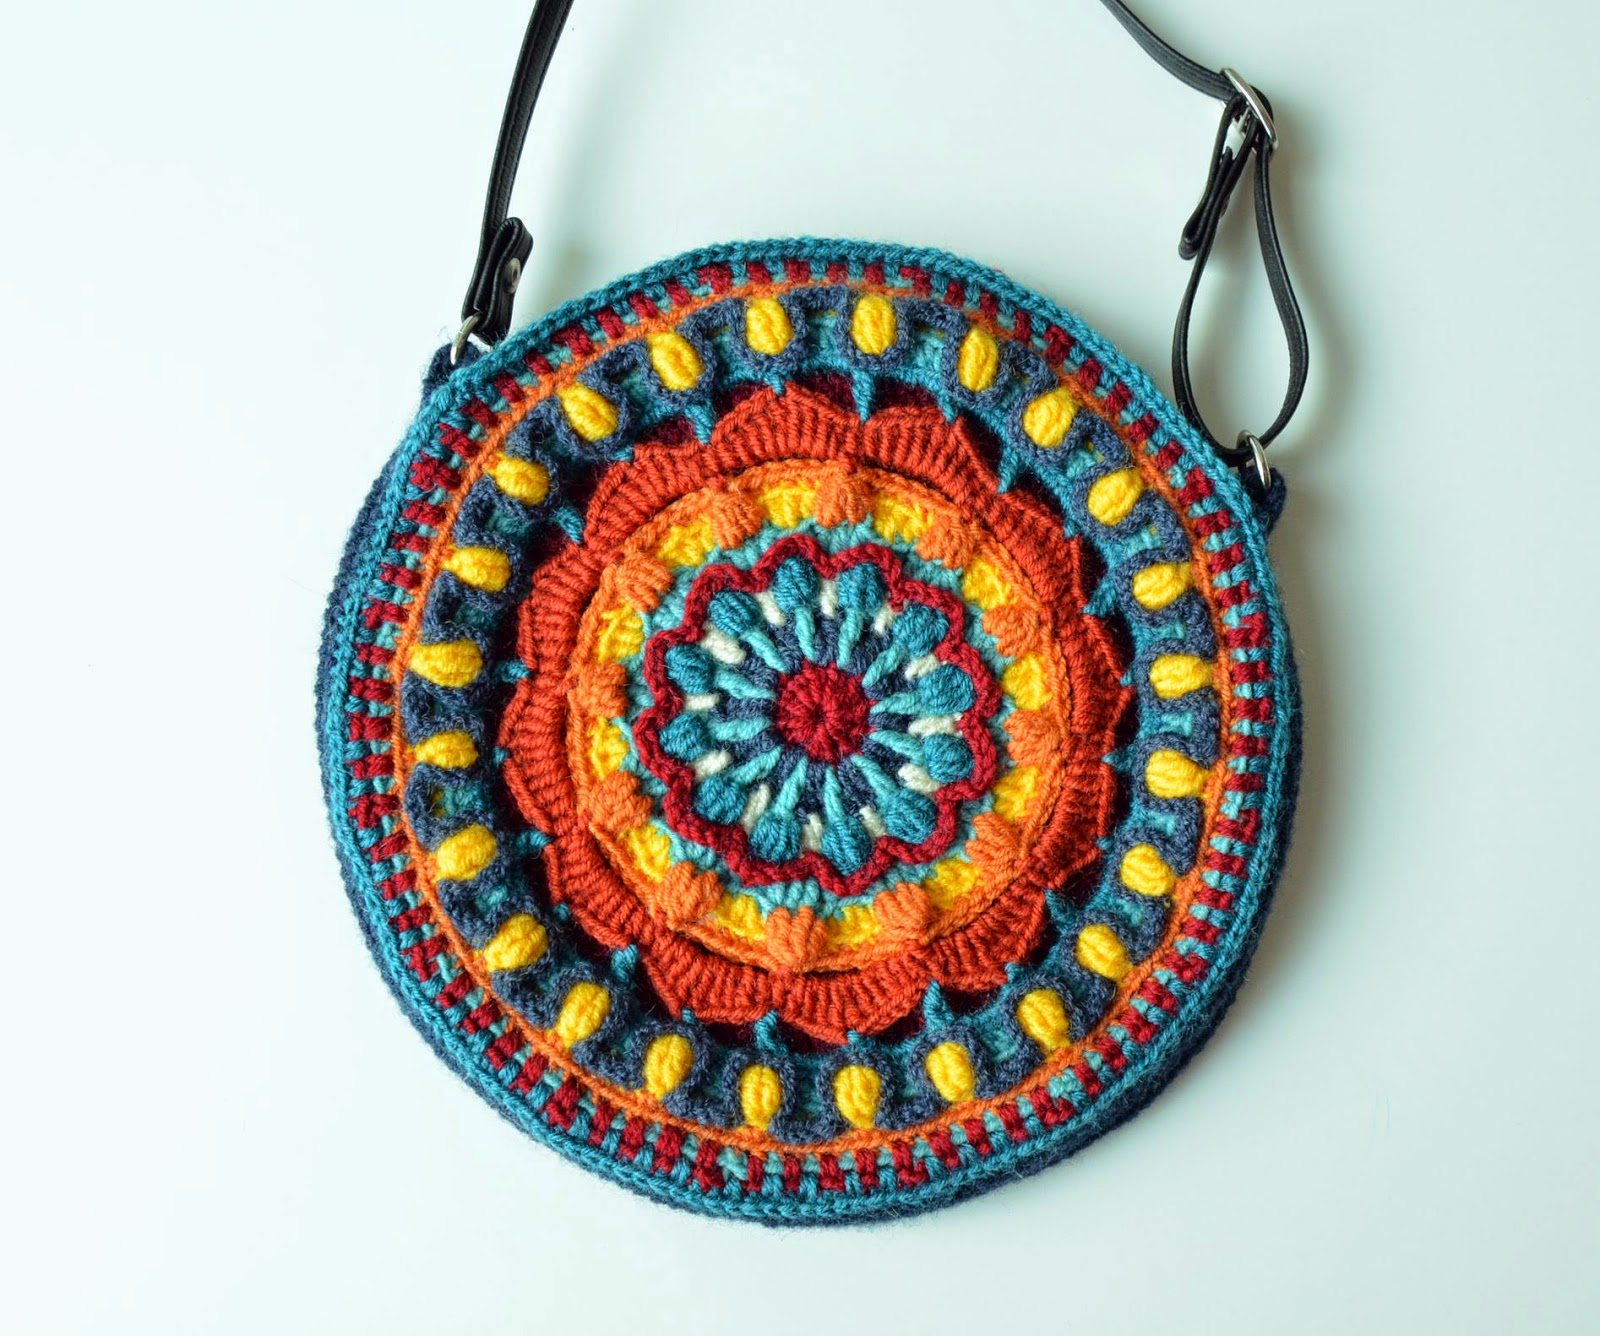 Colorful mandala bag made in overlay crochet